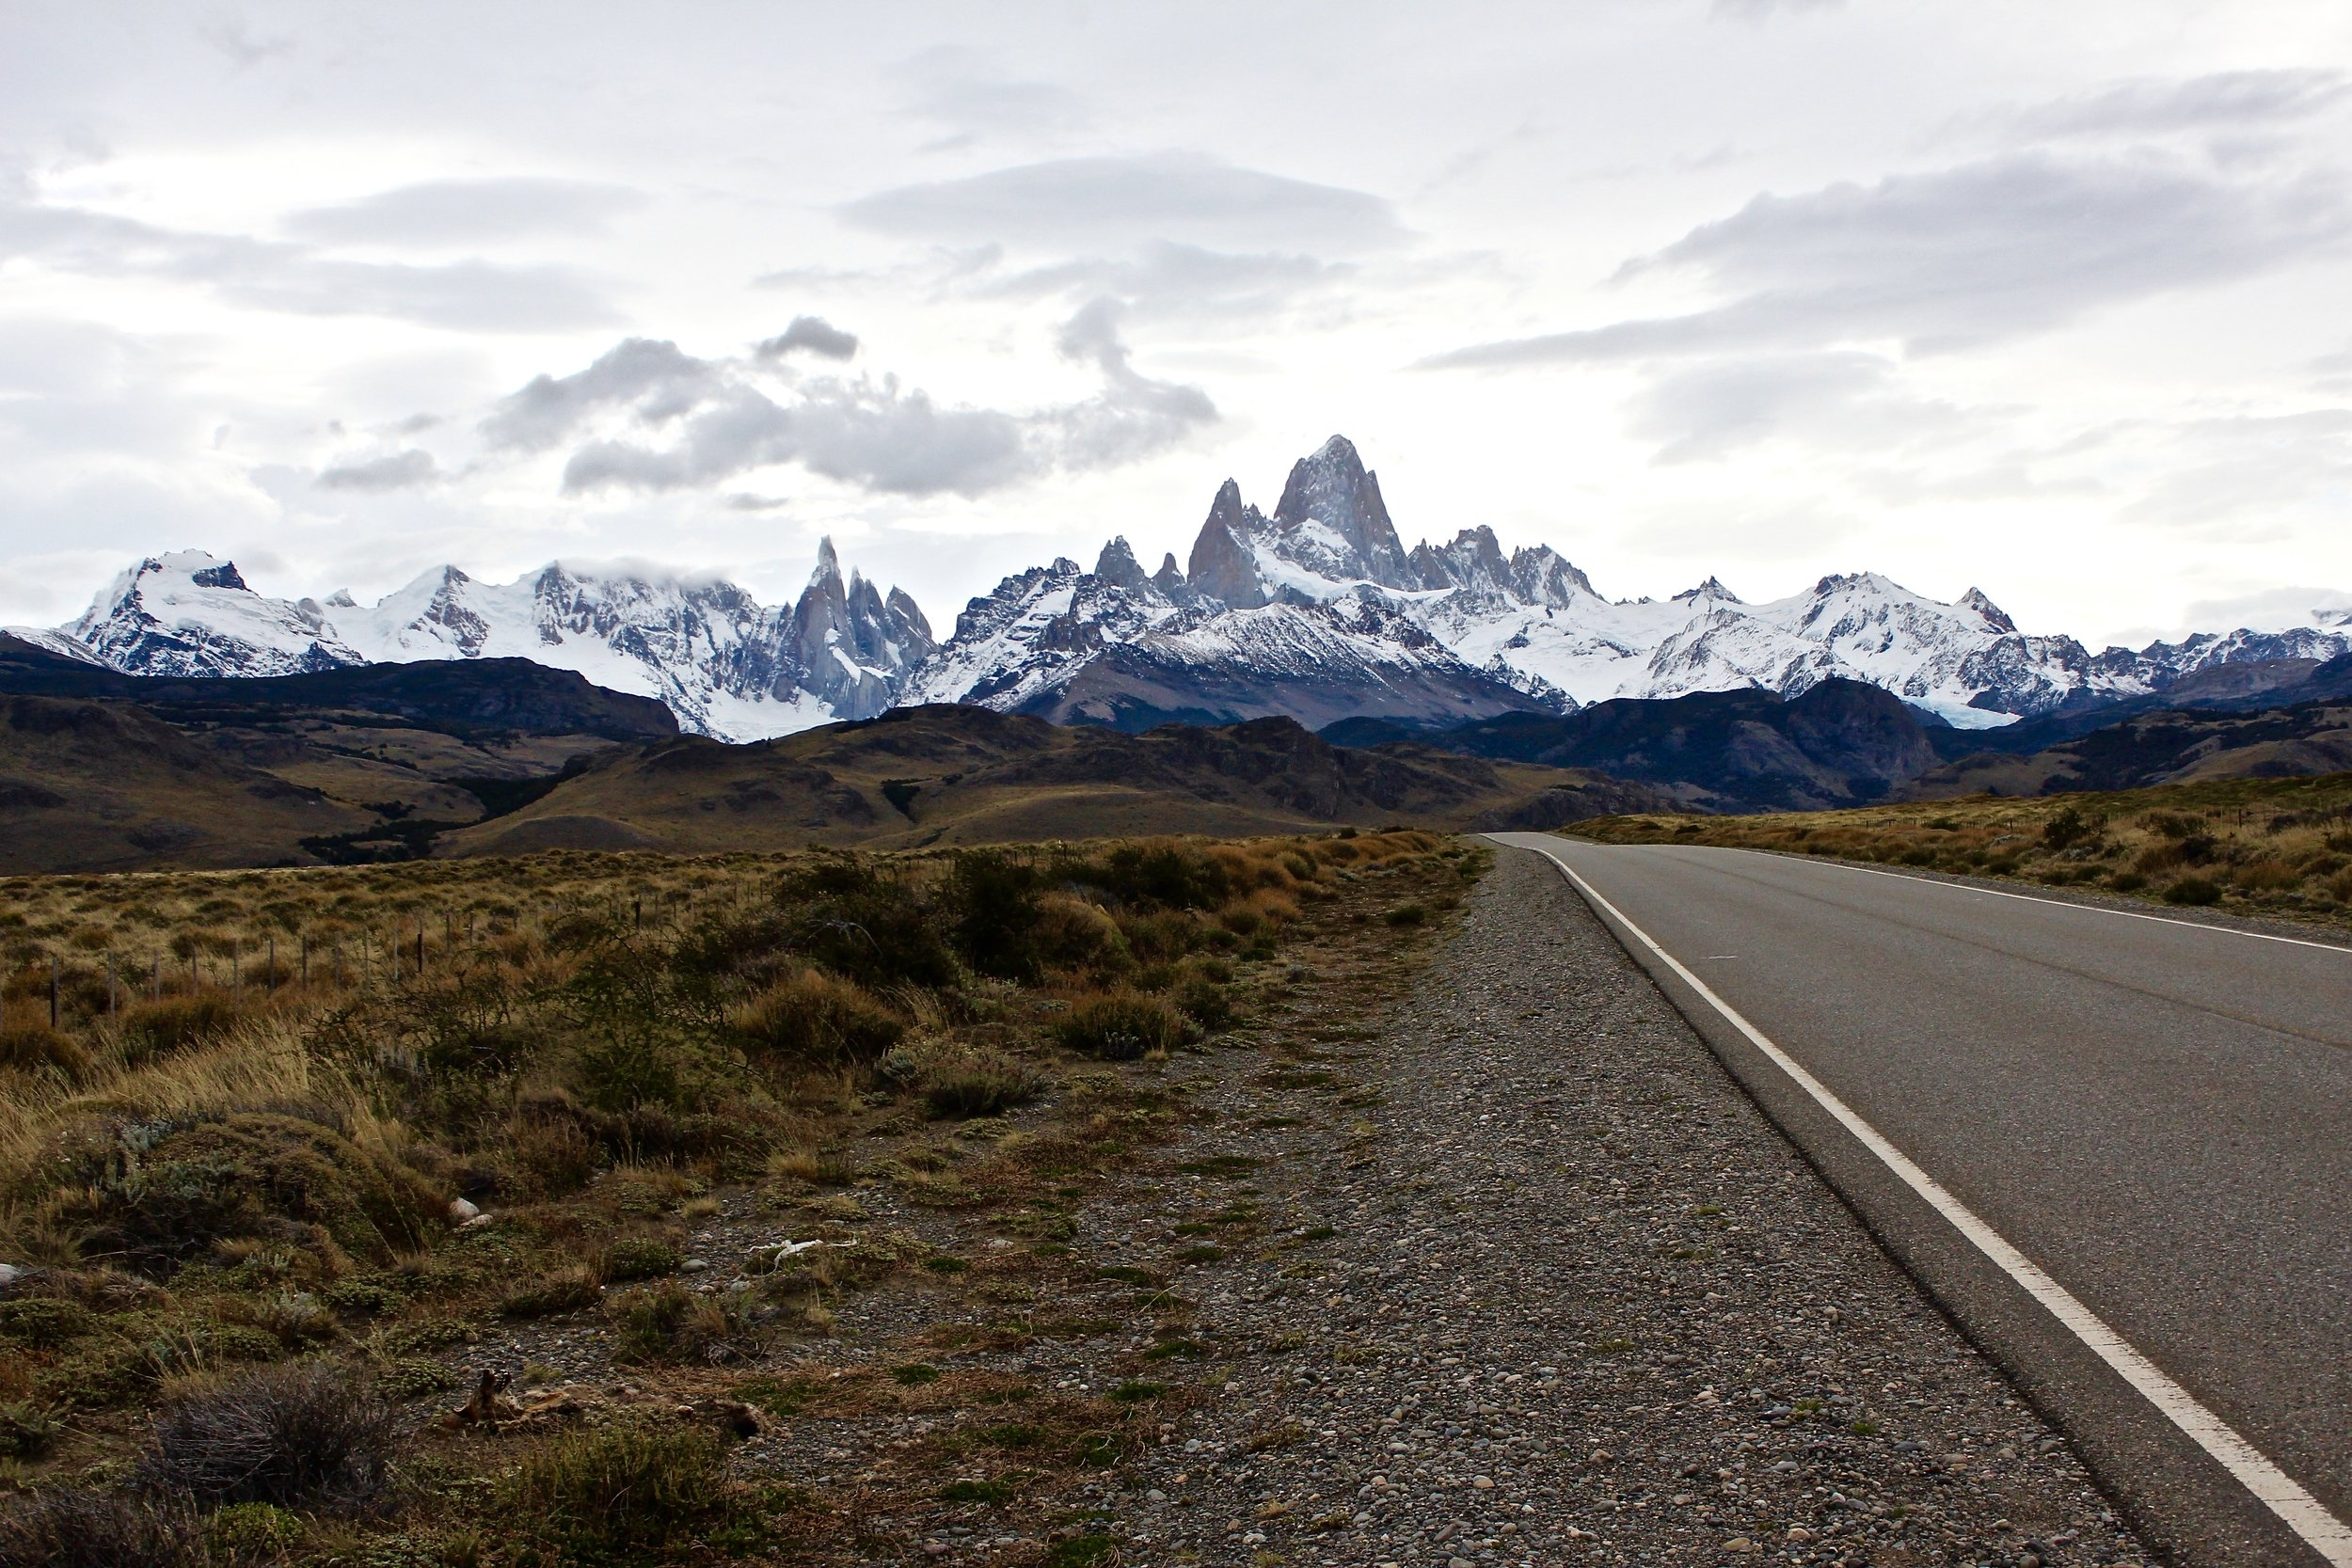 Nearly 360 degree panoramic mountain views from the drive to El Calafate to El Chaltén. But only if it's clear!